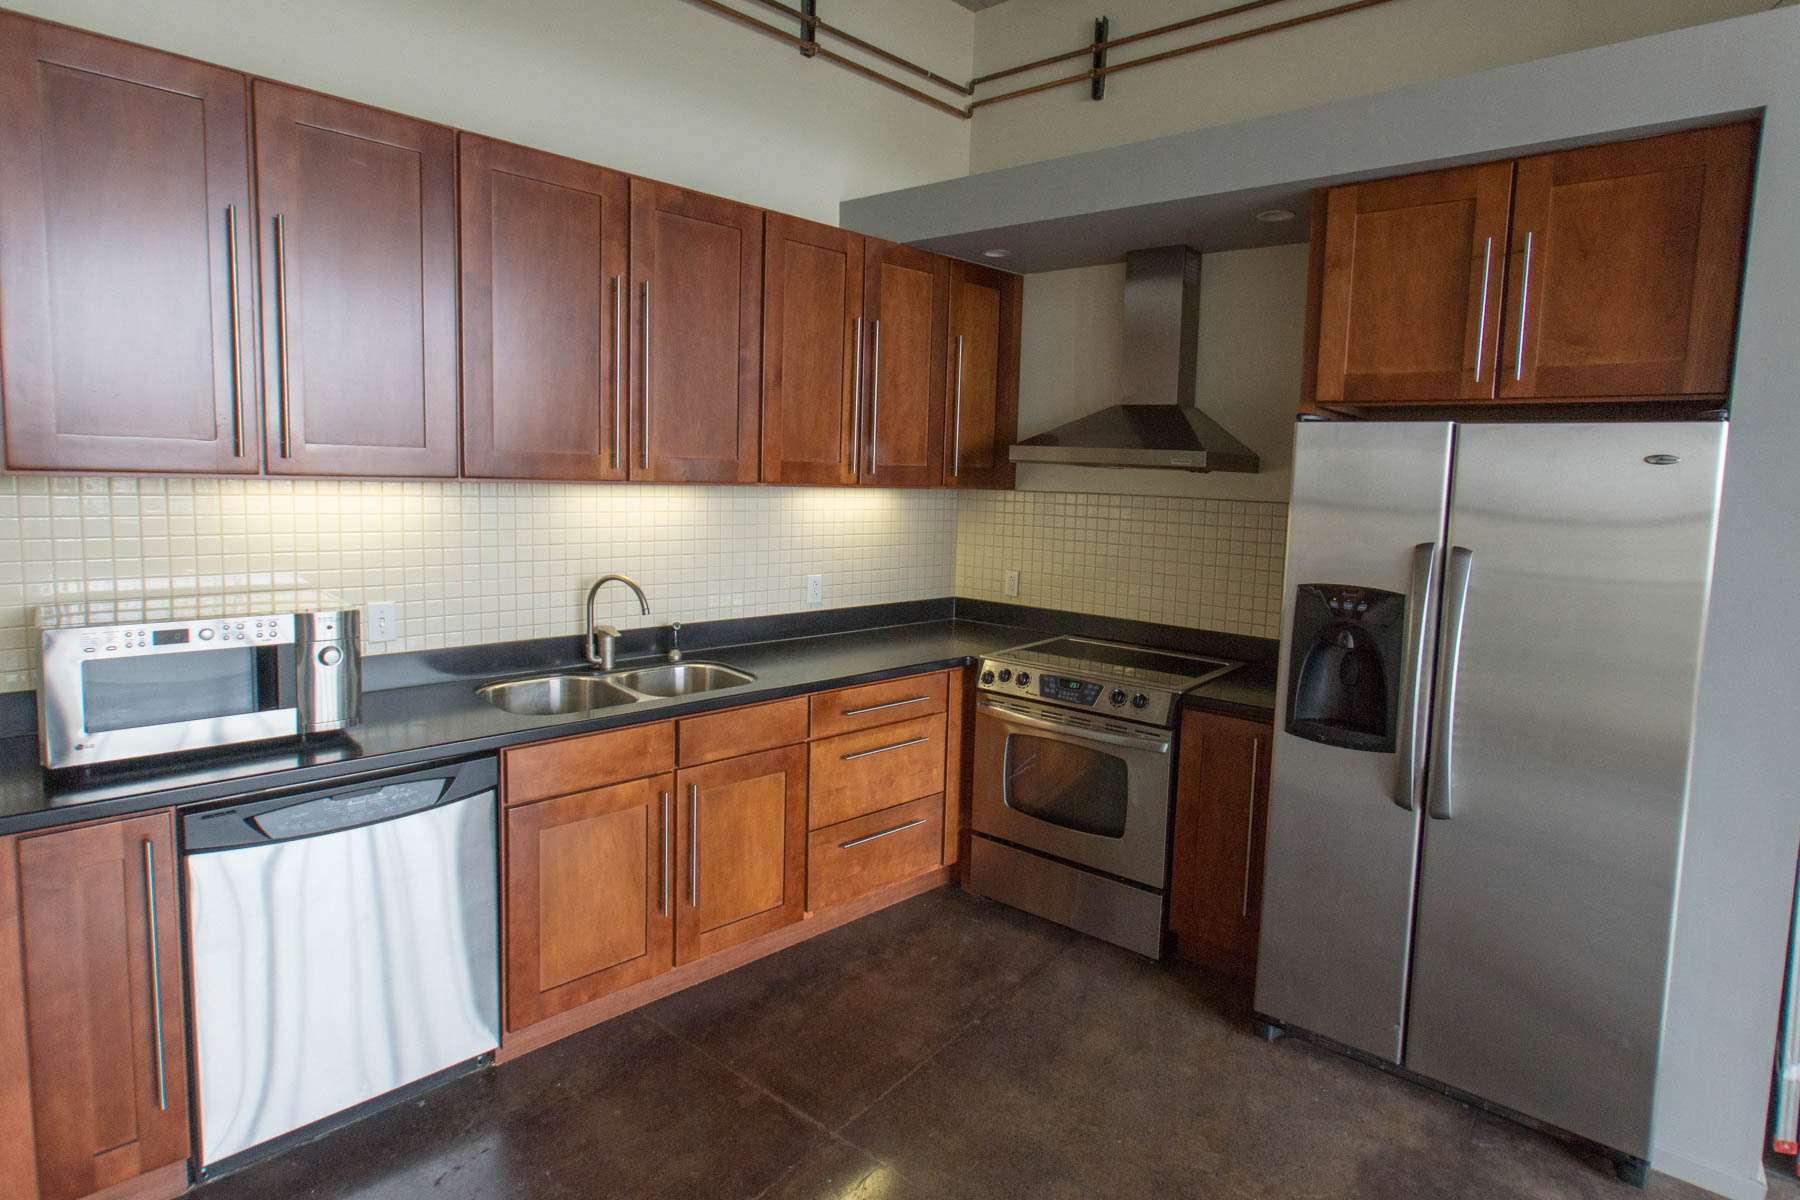 Additional photo for property listing at Chouteau Ave 1720 Chouteau Ave # 201 St. Louis, Missouri 63103 United States